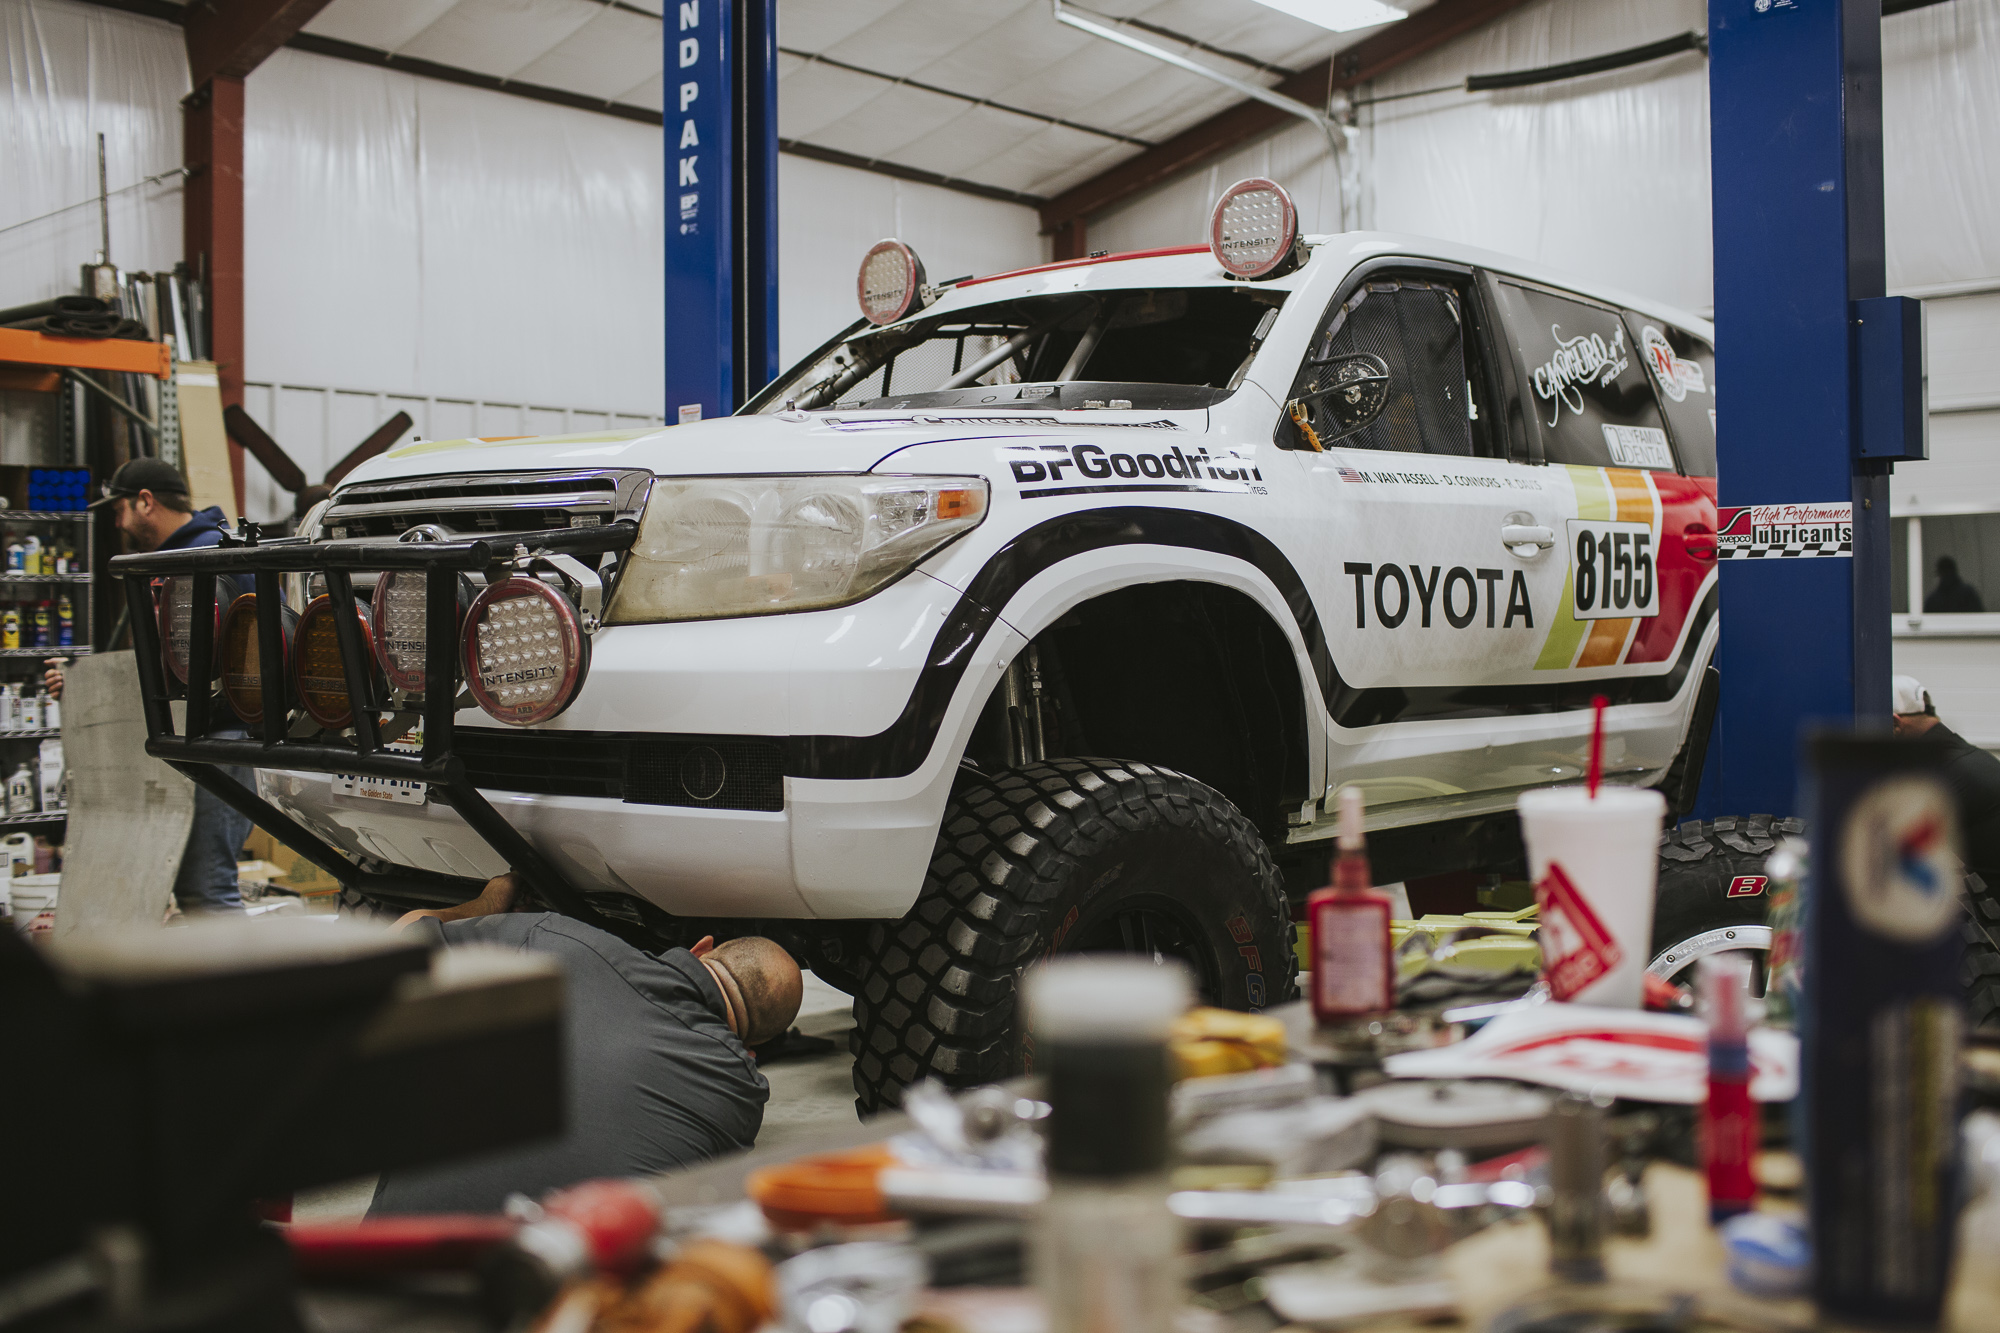 Canguro Racing Toyota Landcruiser getting work done in shop